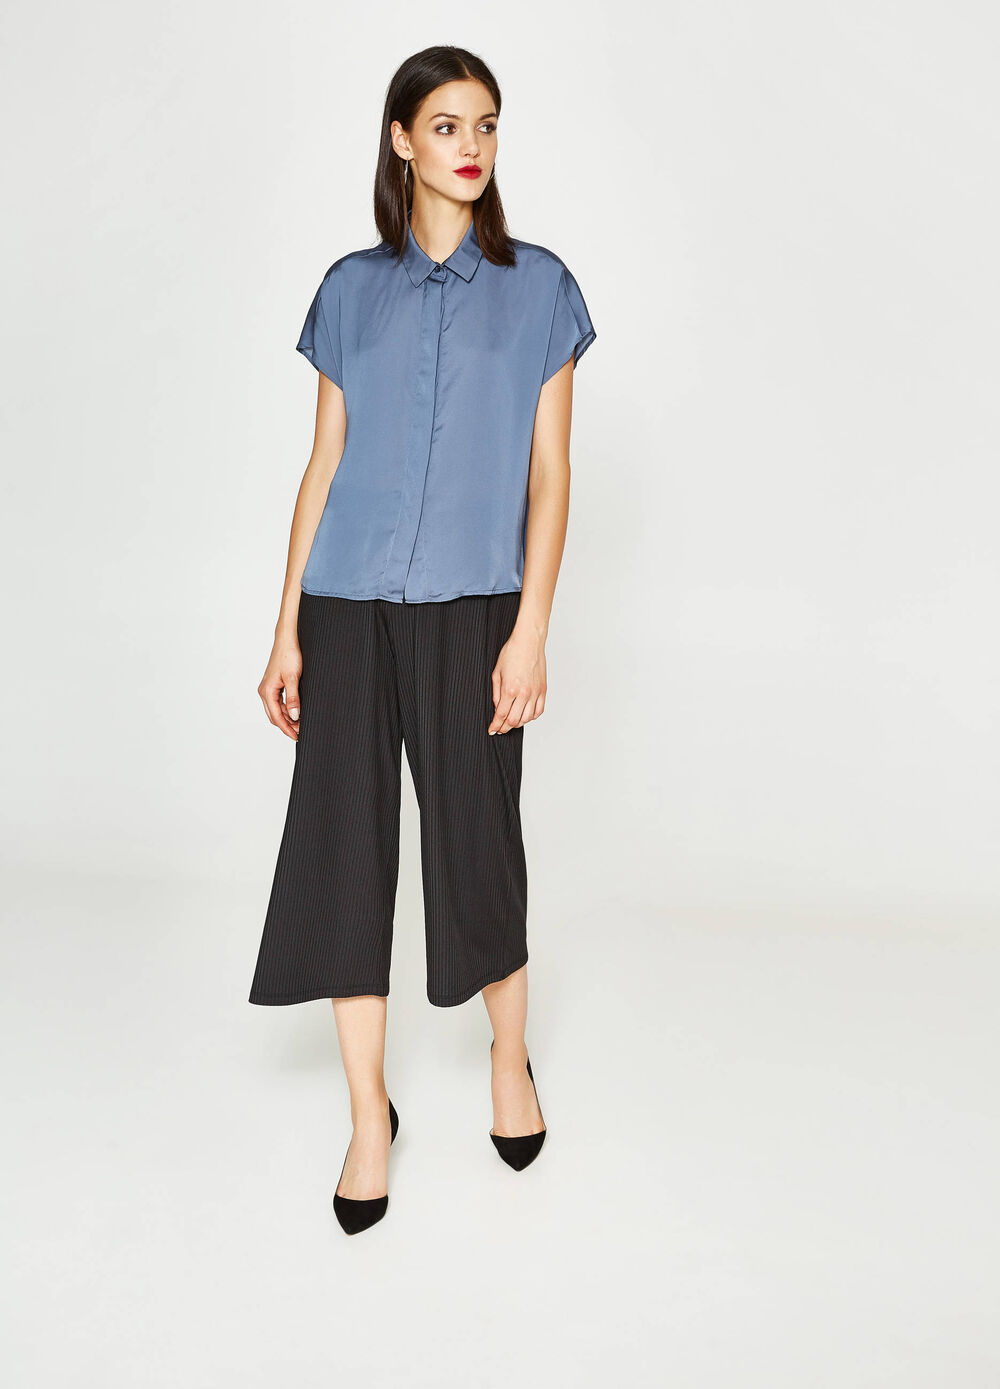 Satin shirt with cap sleeves